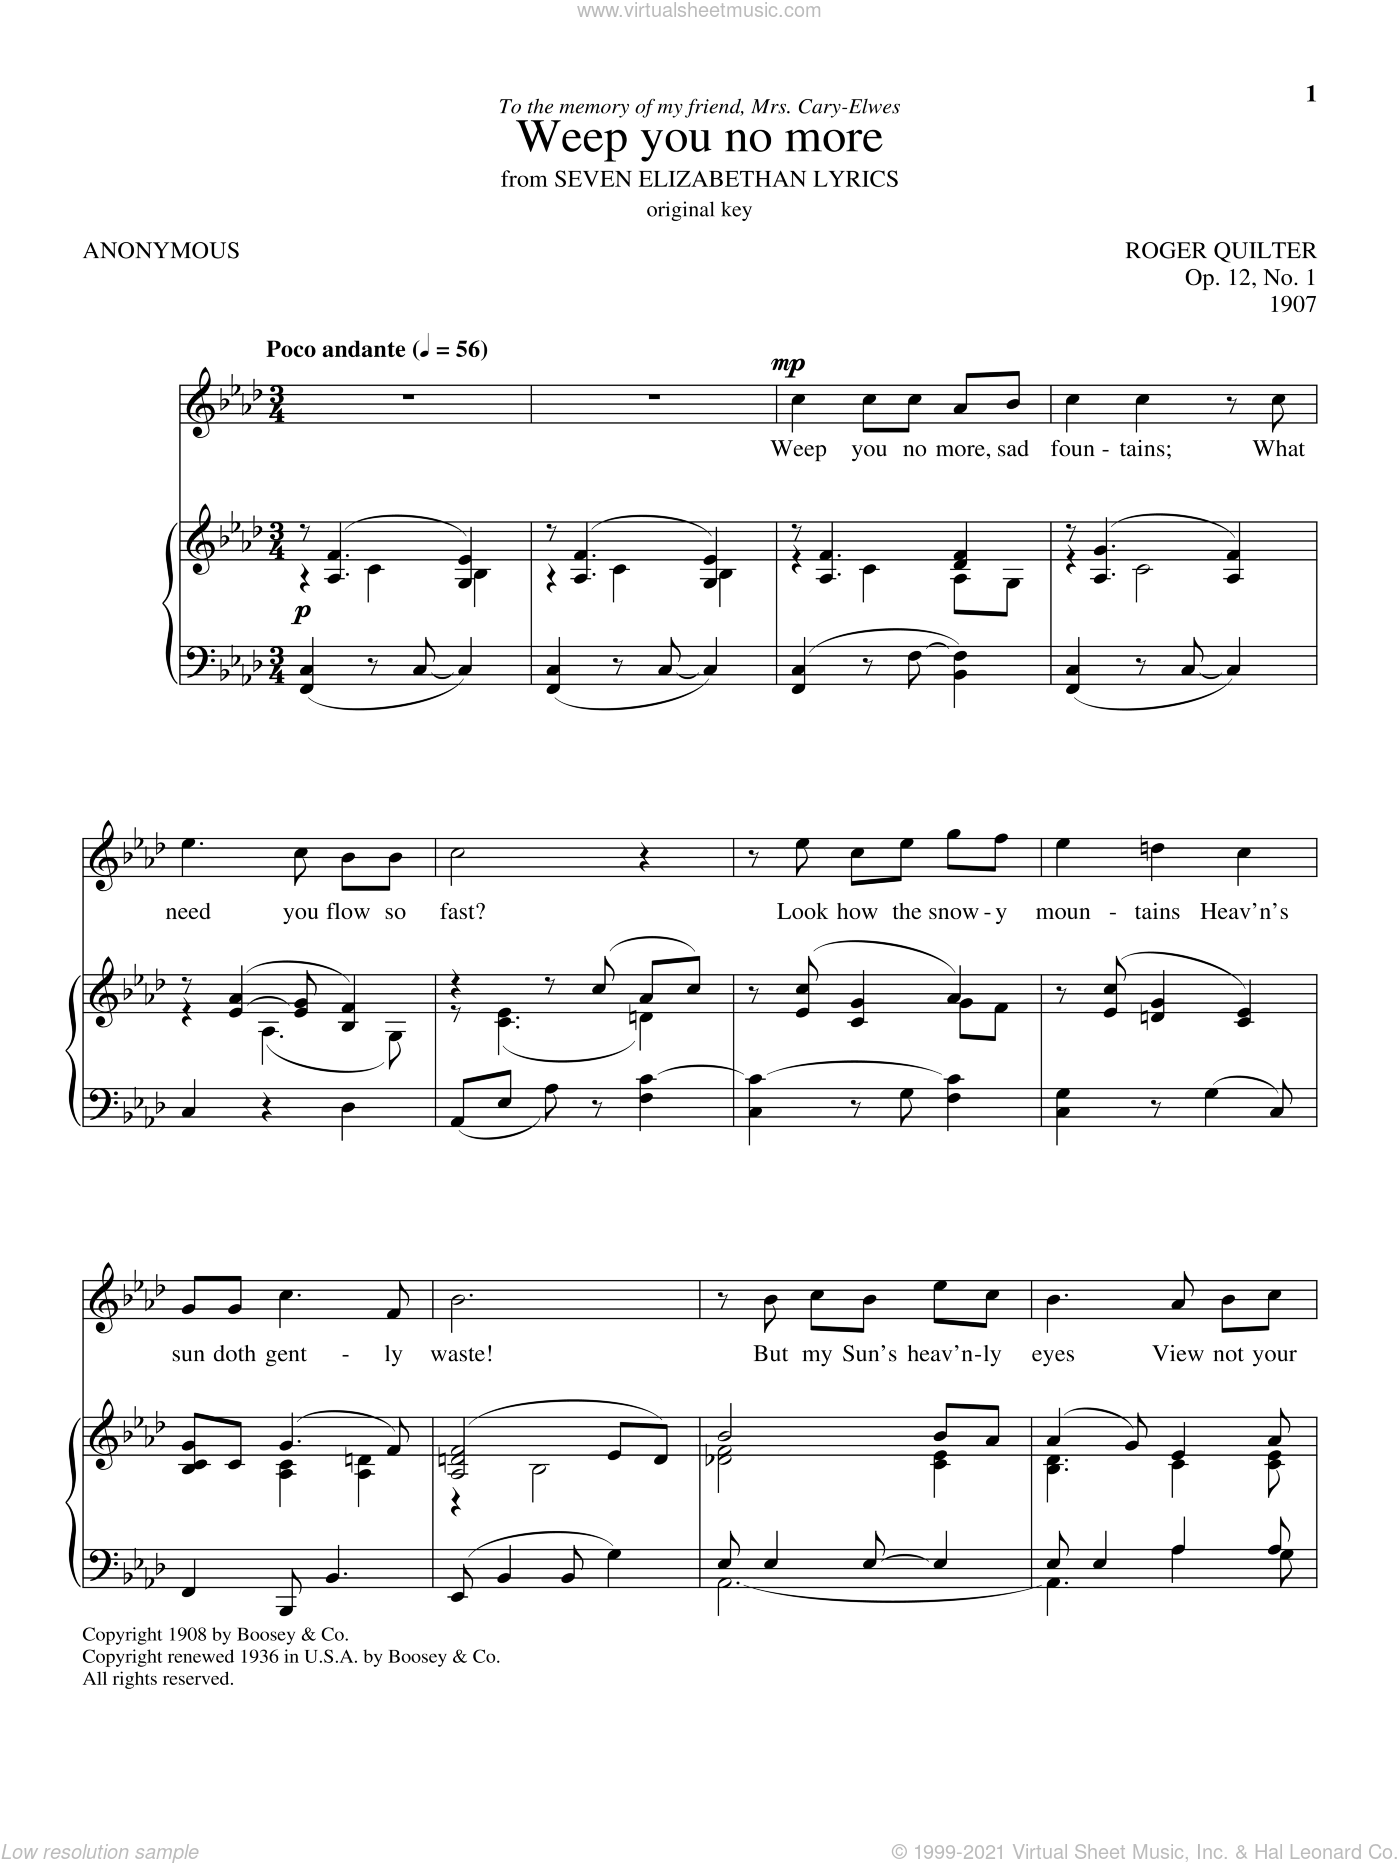 Weep You No More sheet music for voice and piano by Roger Quilter, intermediate skill level